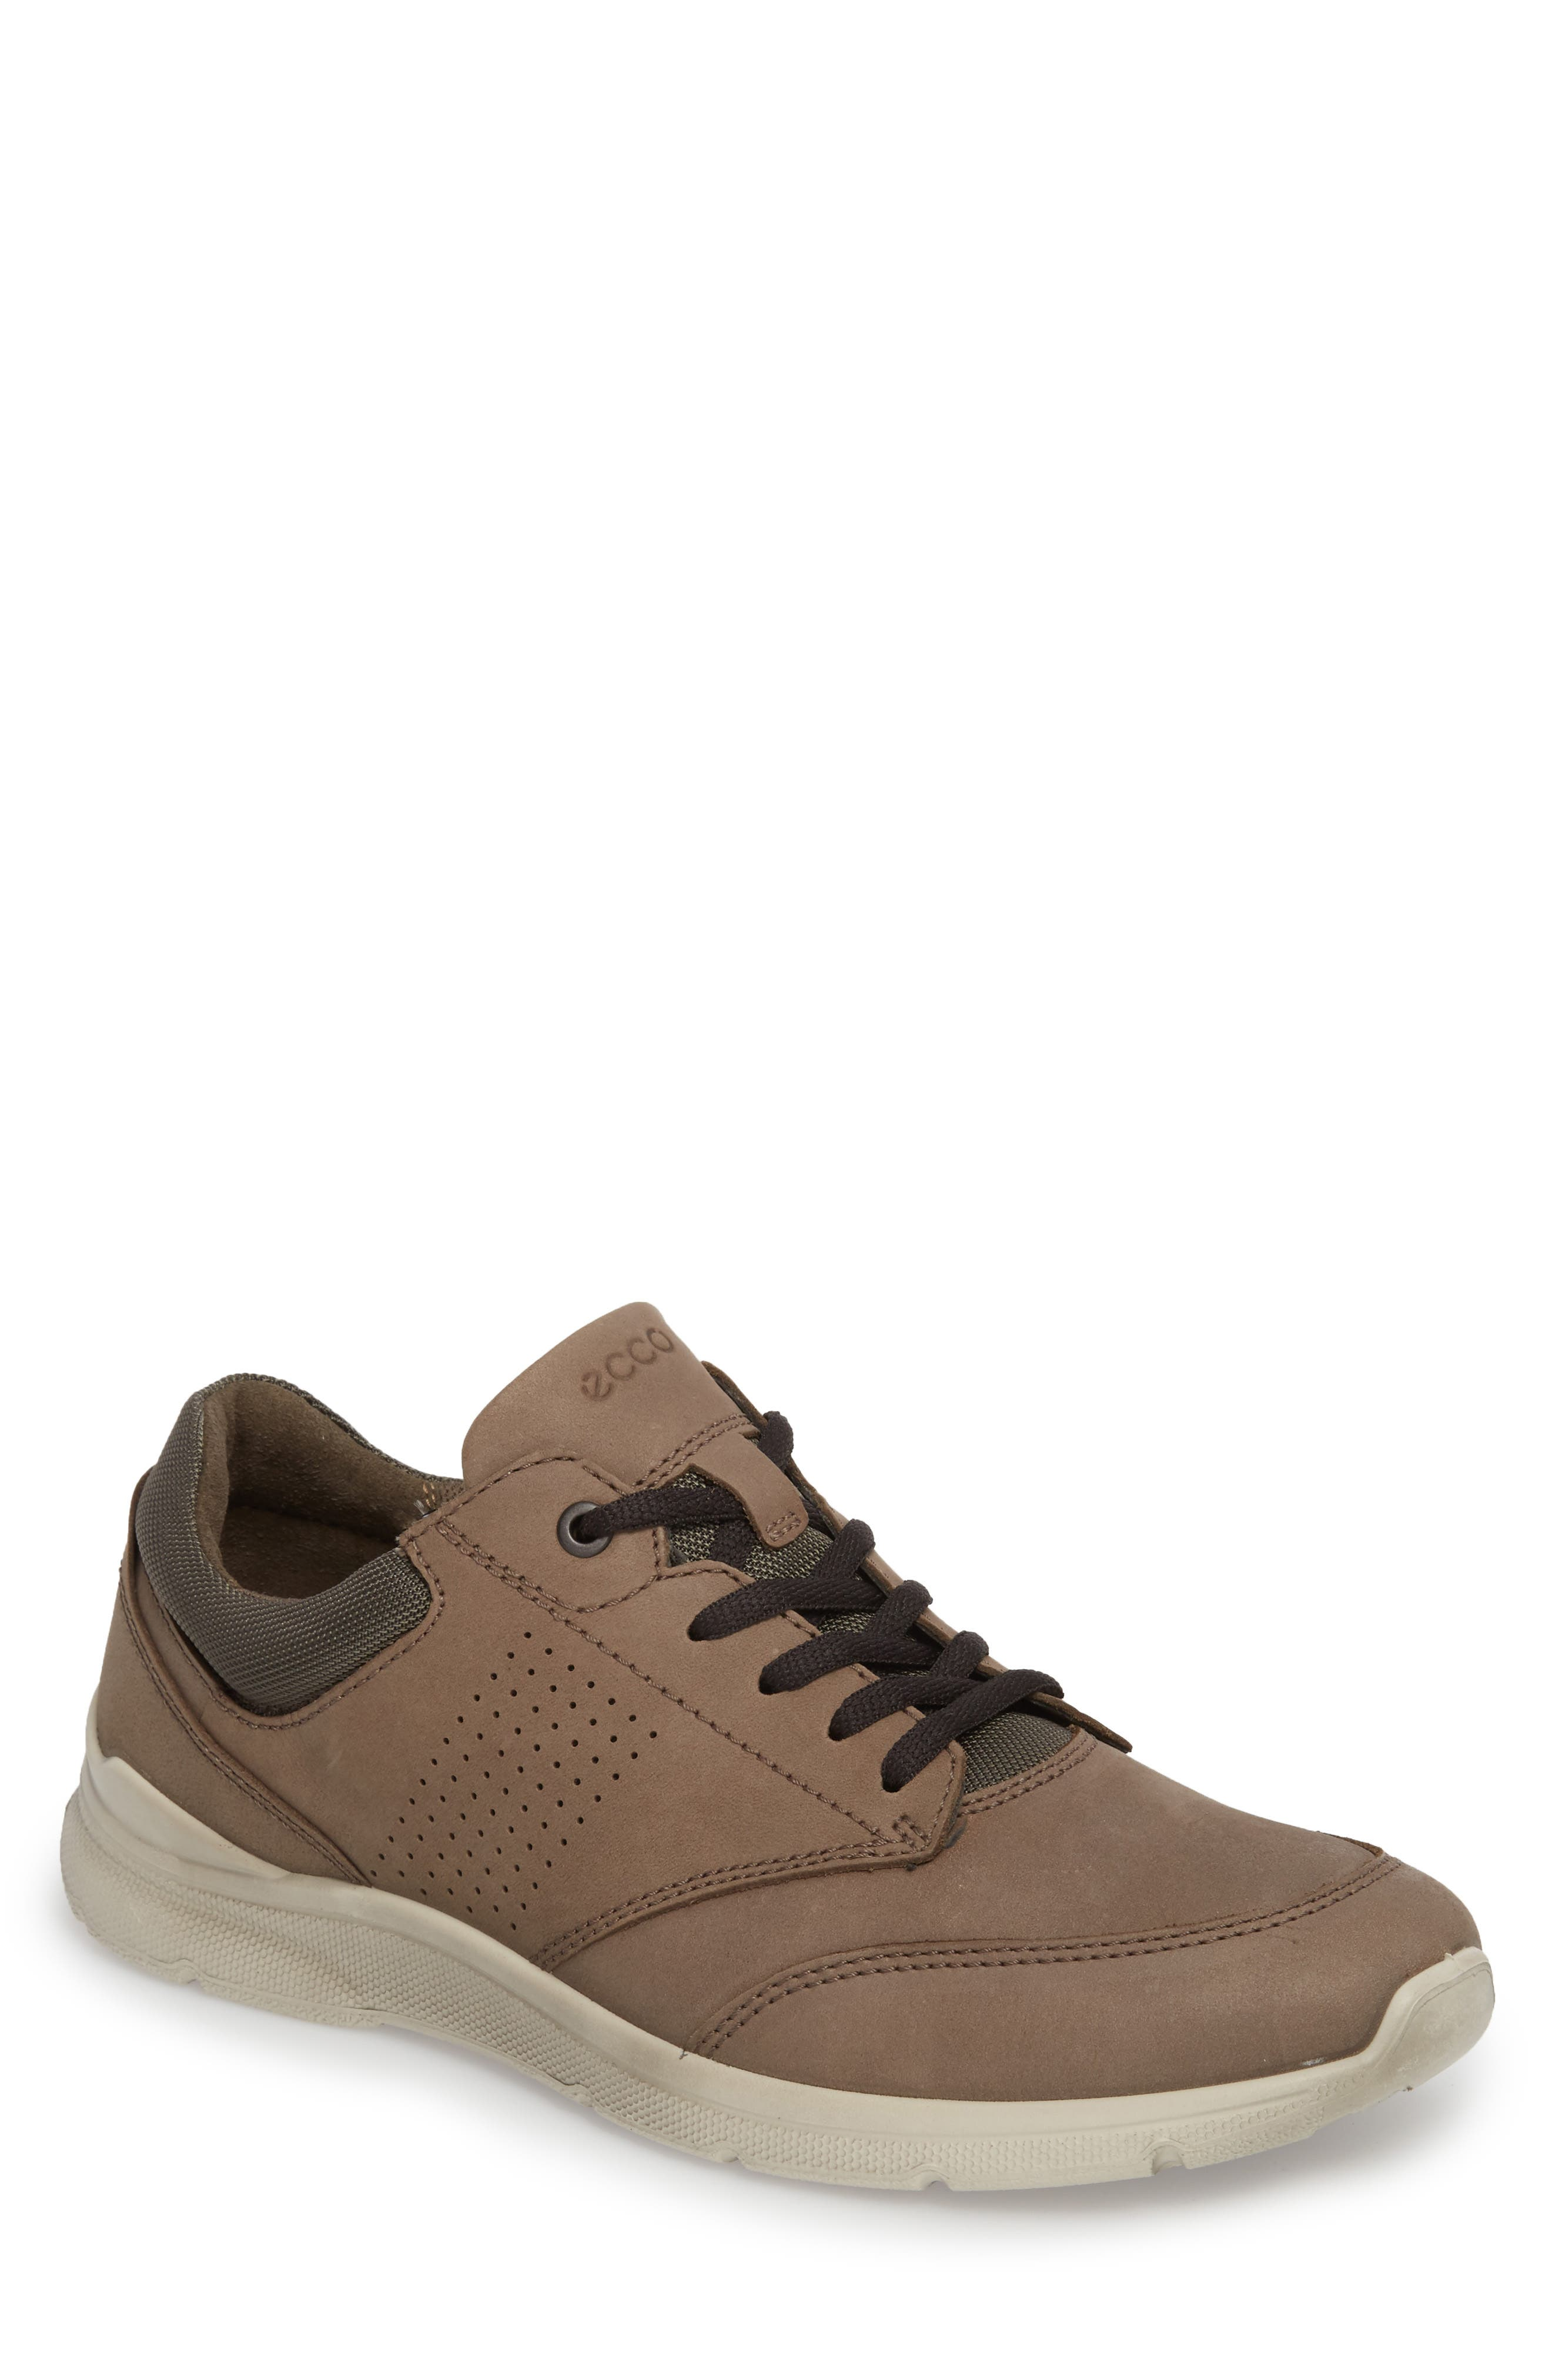 Irving Sneaker,                             Main thumbnail 1, color,                             DARK CLAY LEATHER